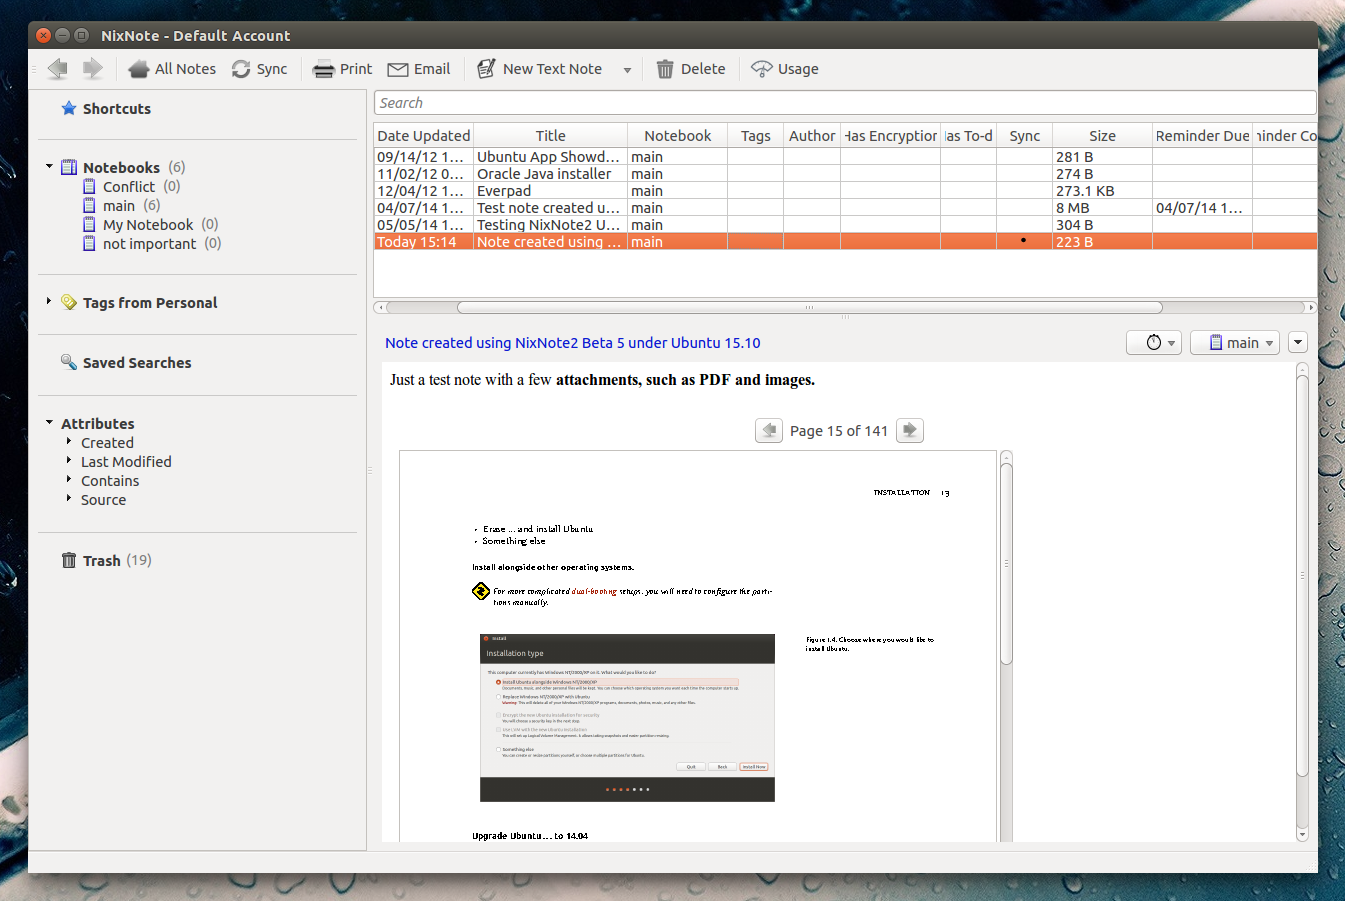 Evernote Linux Client `NixNote` 2 Beta 5 Available For